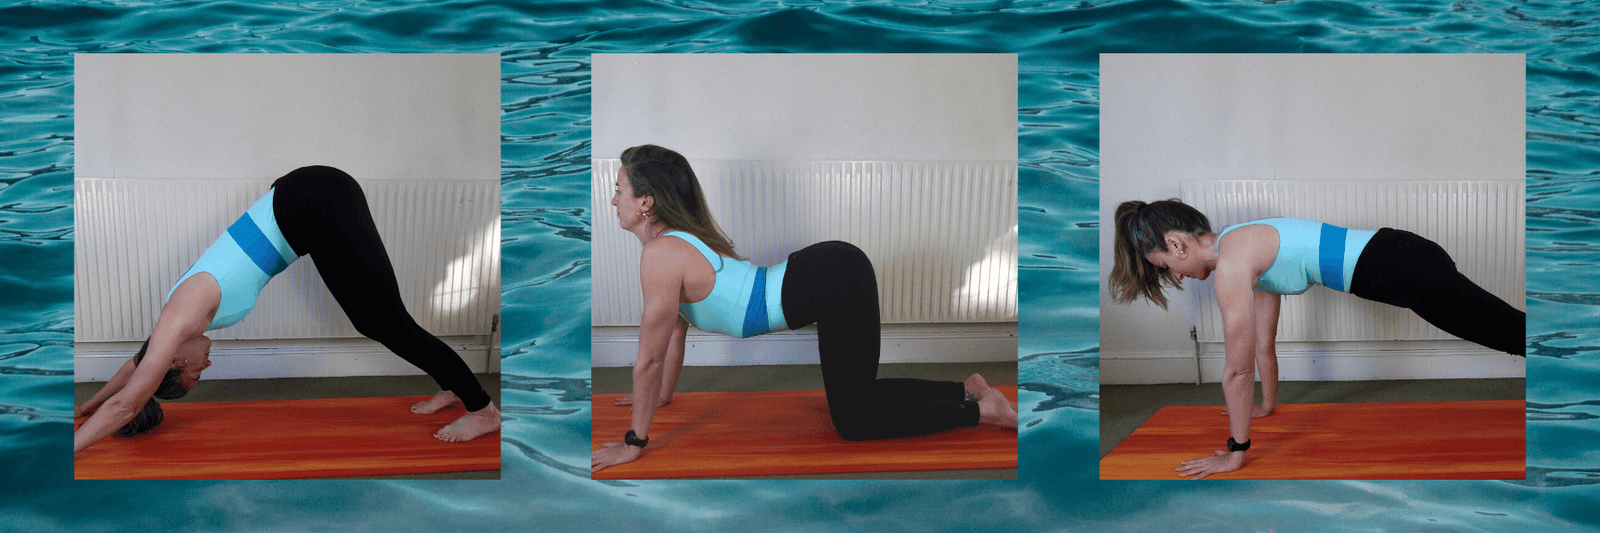 40 Easy Yoga Poses For Beginners - Deakin and Blue